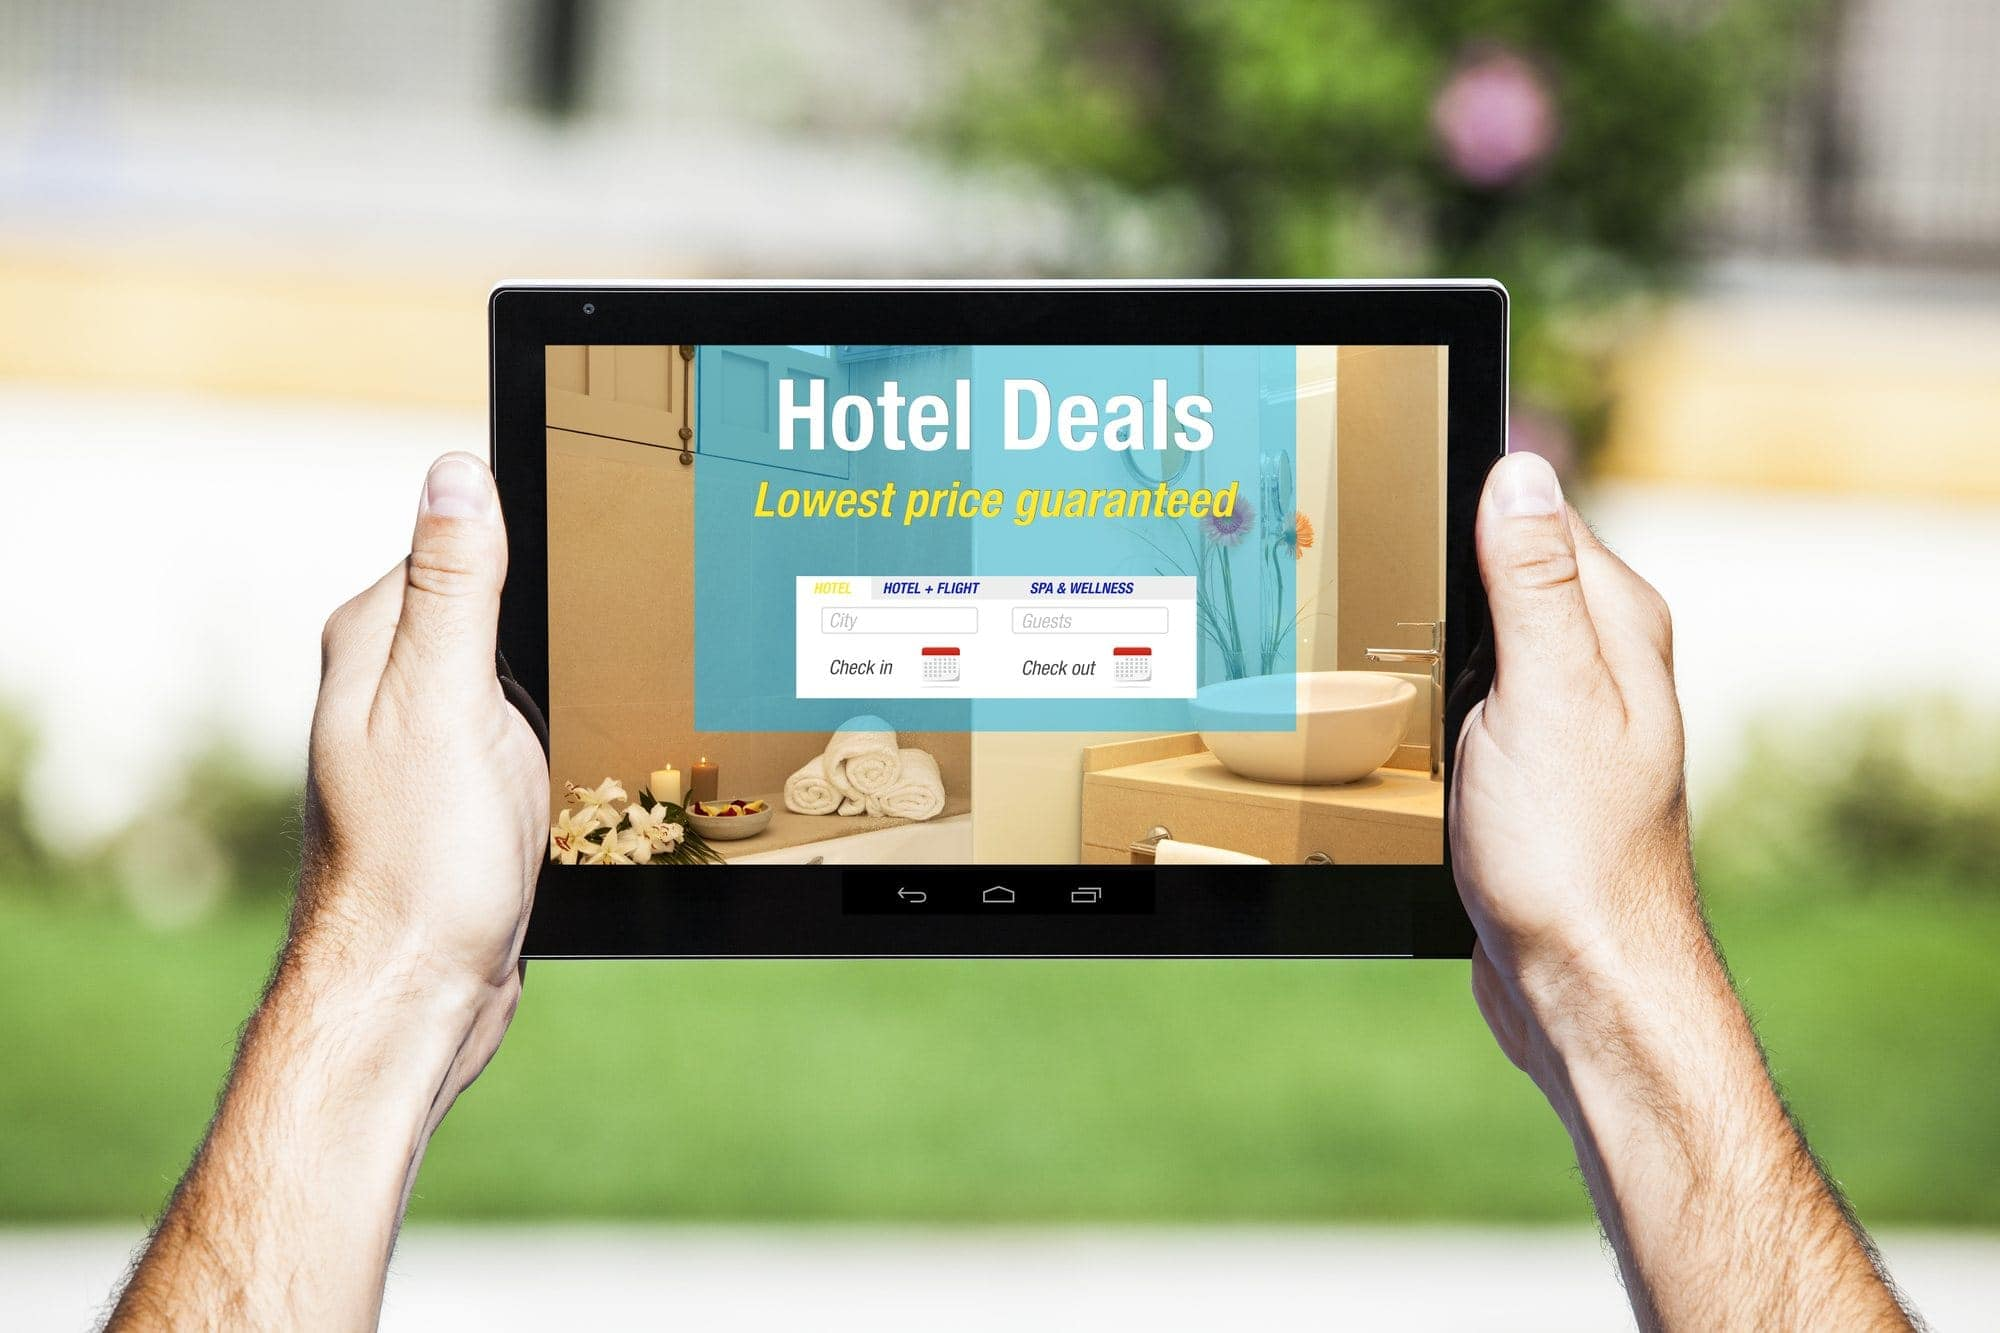 Use travel search aggregator sites to find deals on hotels, flights, rental cars and more